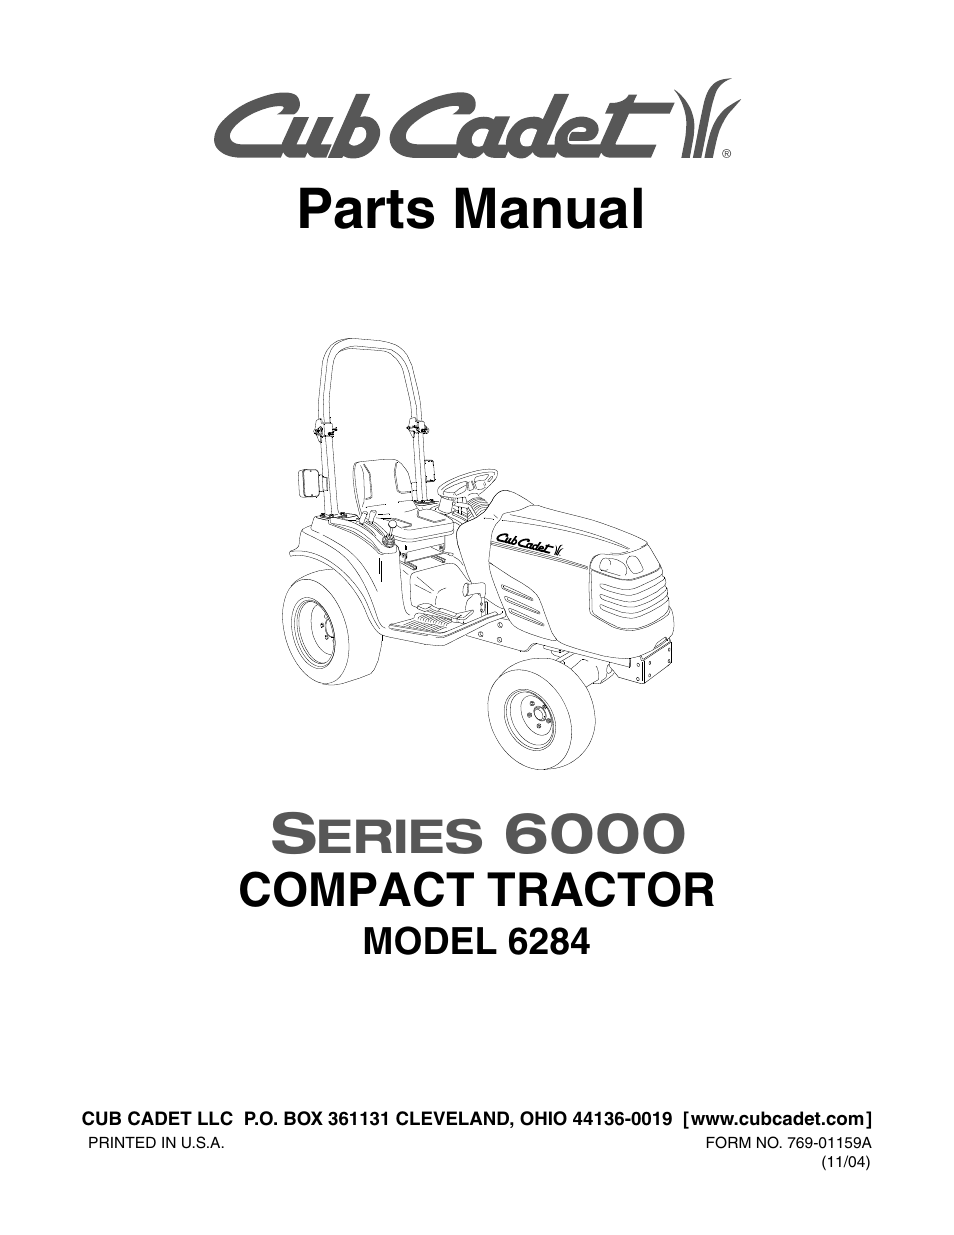 Cub cadet 6284 user manual 39 pages pooptronica